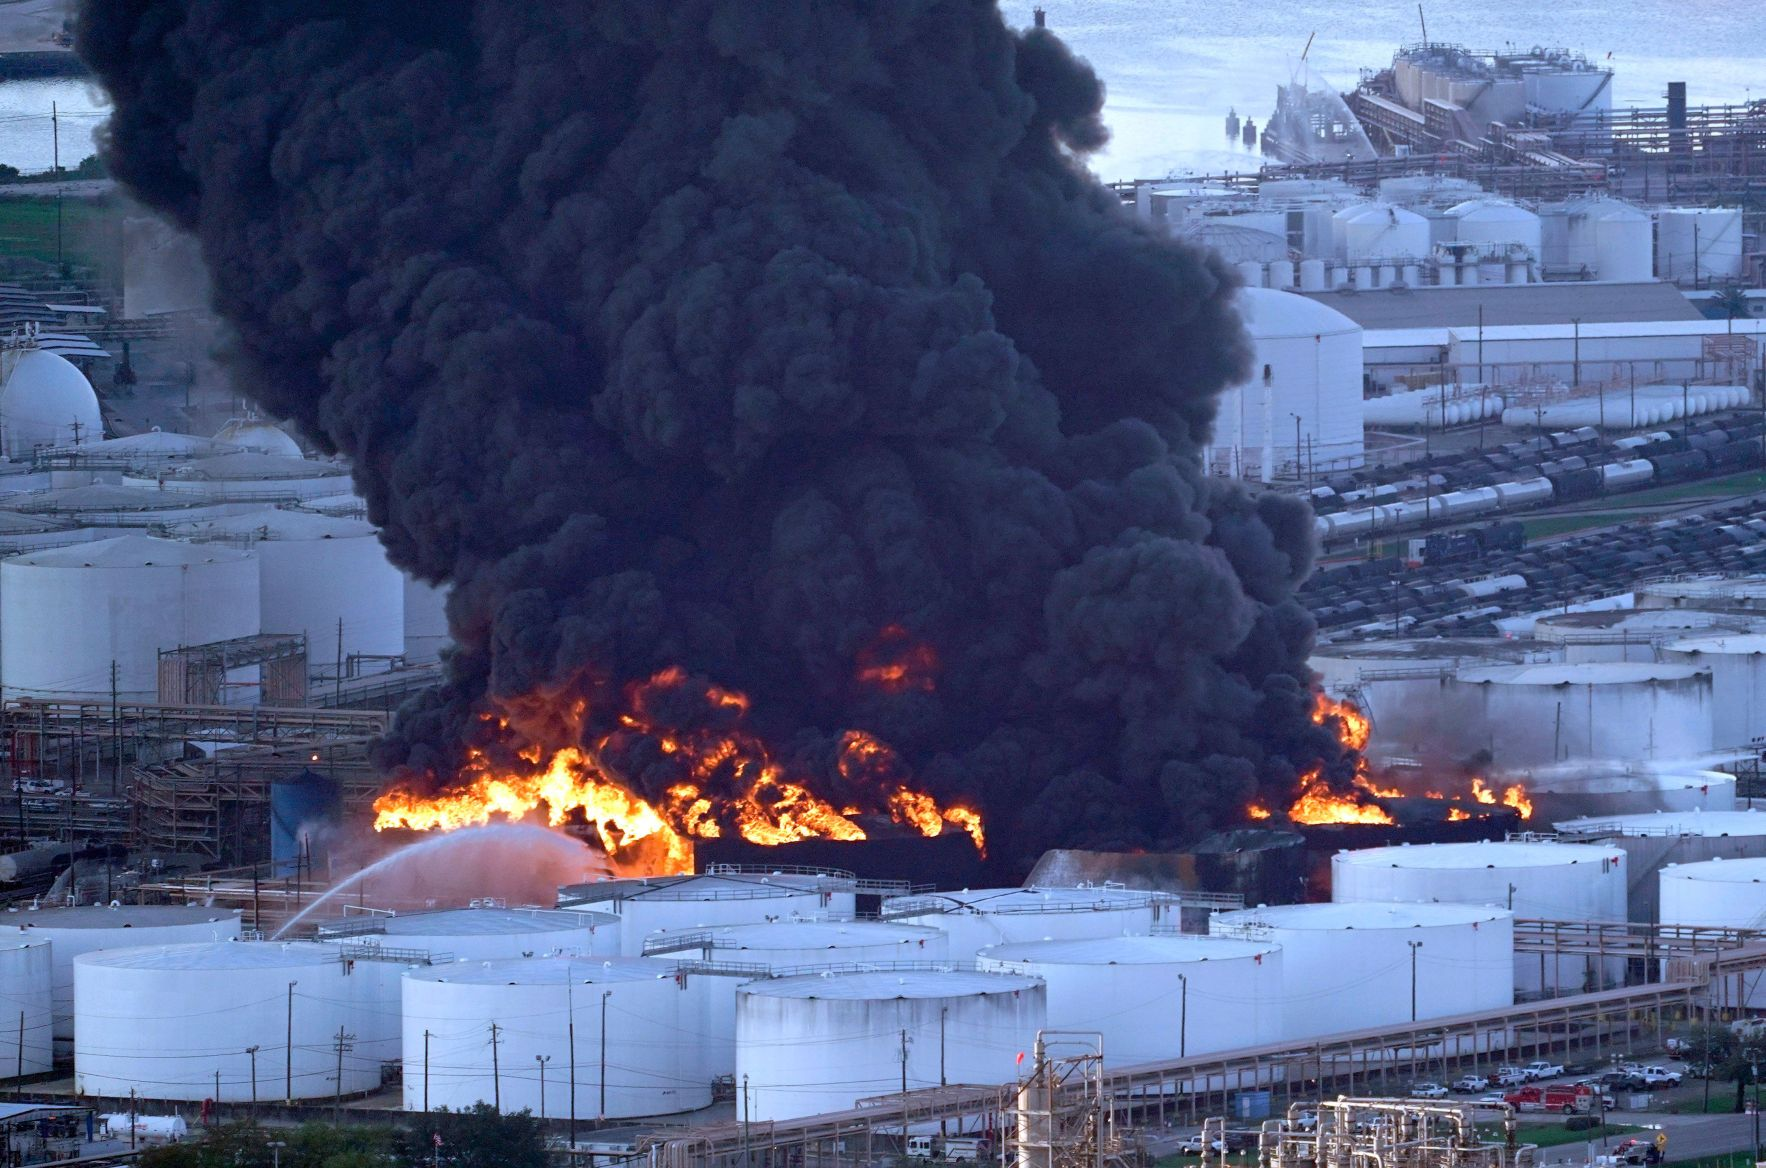 Firefighters battle a petrochemical fire at the Intercontinental Terminals Company on March 18, 2019, in Deer Park, Texas.&nb